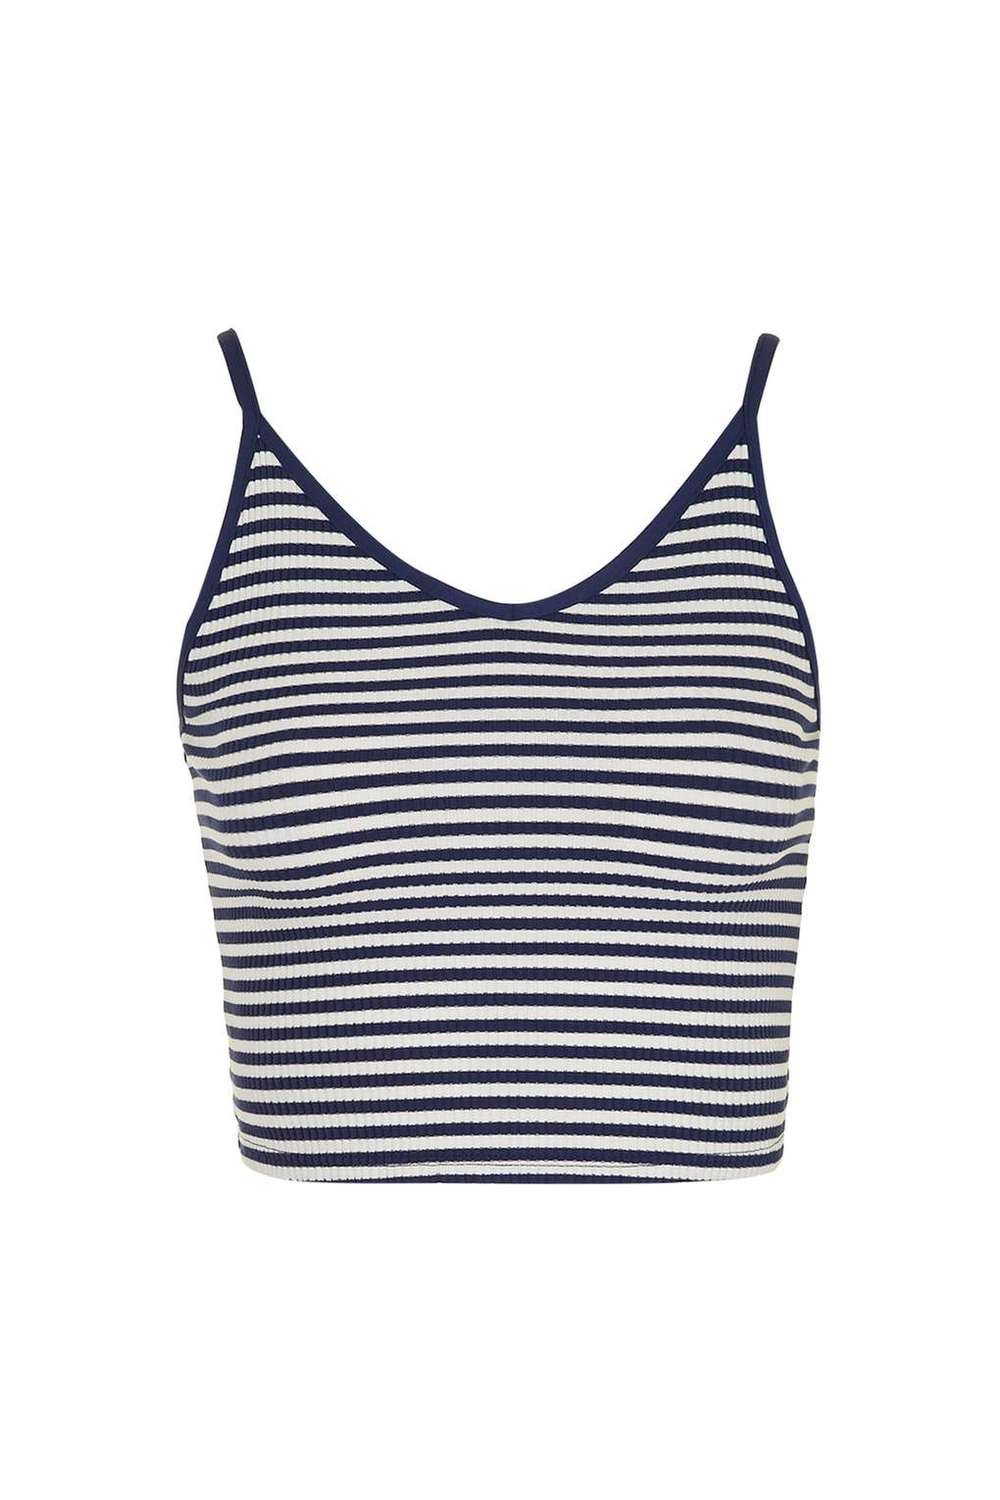 Stripe Crop Cami £8.00, Top Shop